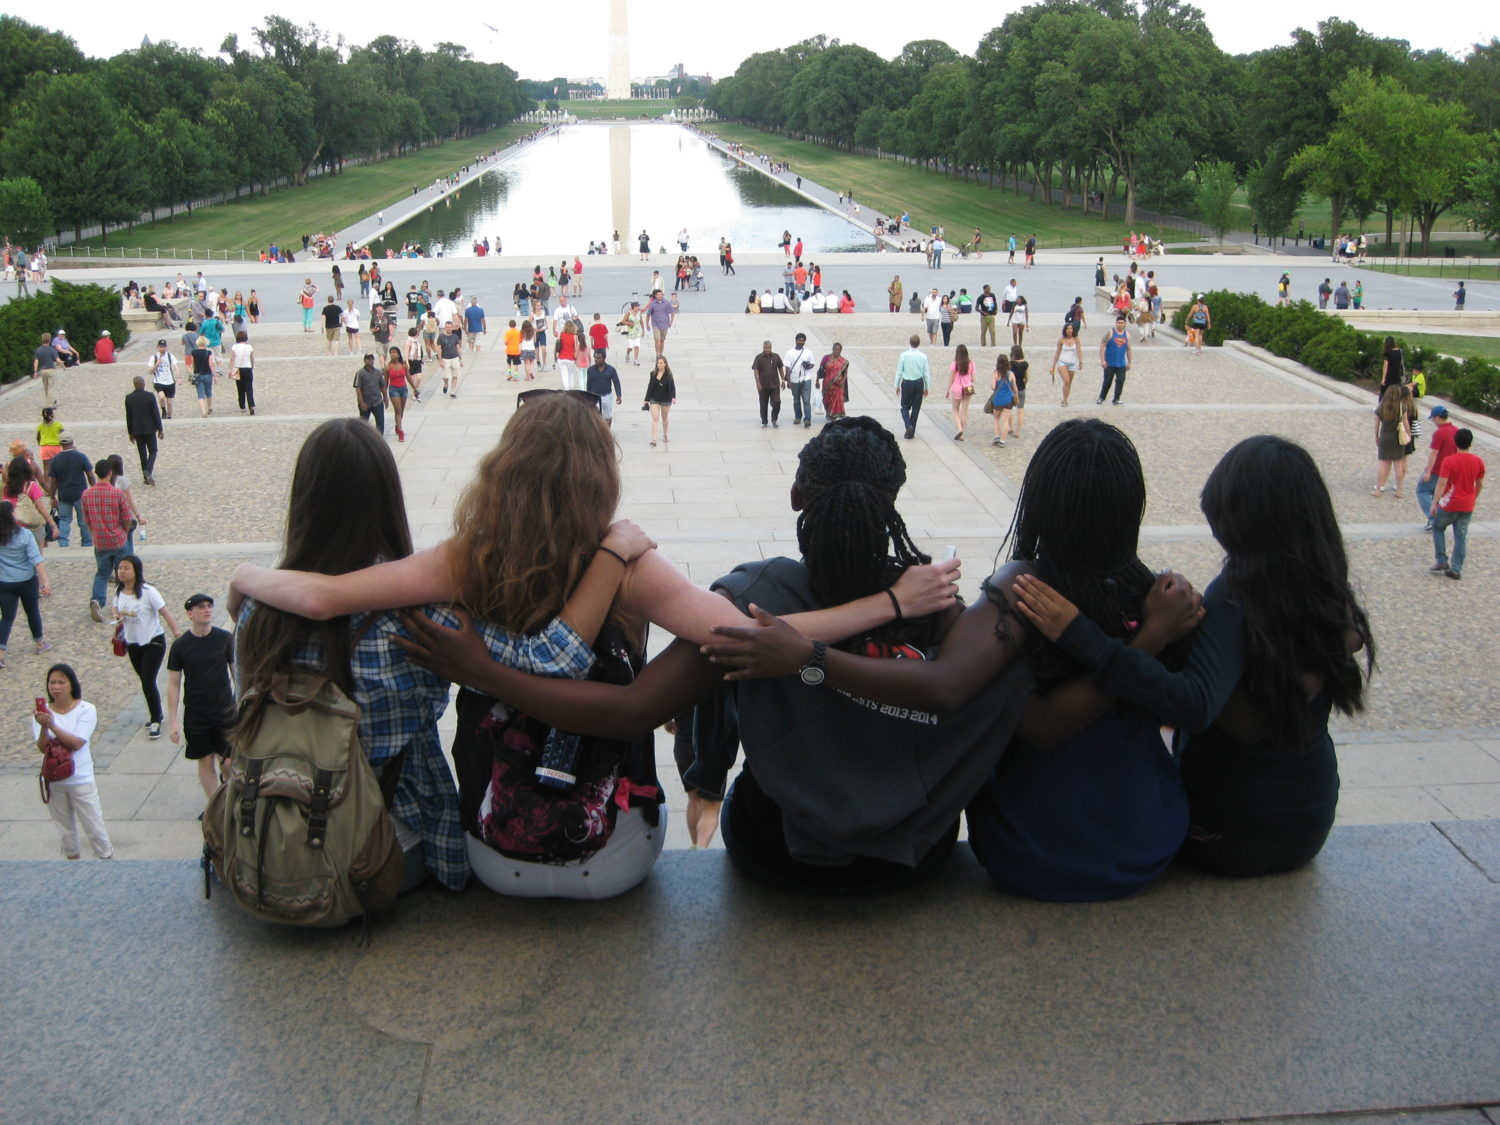 Fellows Looking at Reflecting Pool